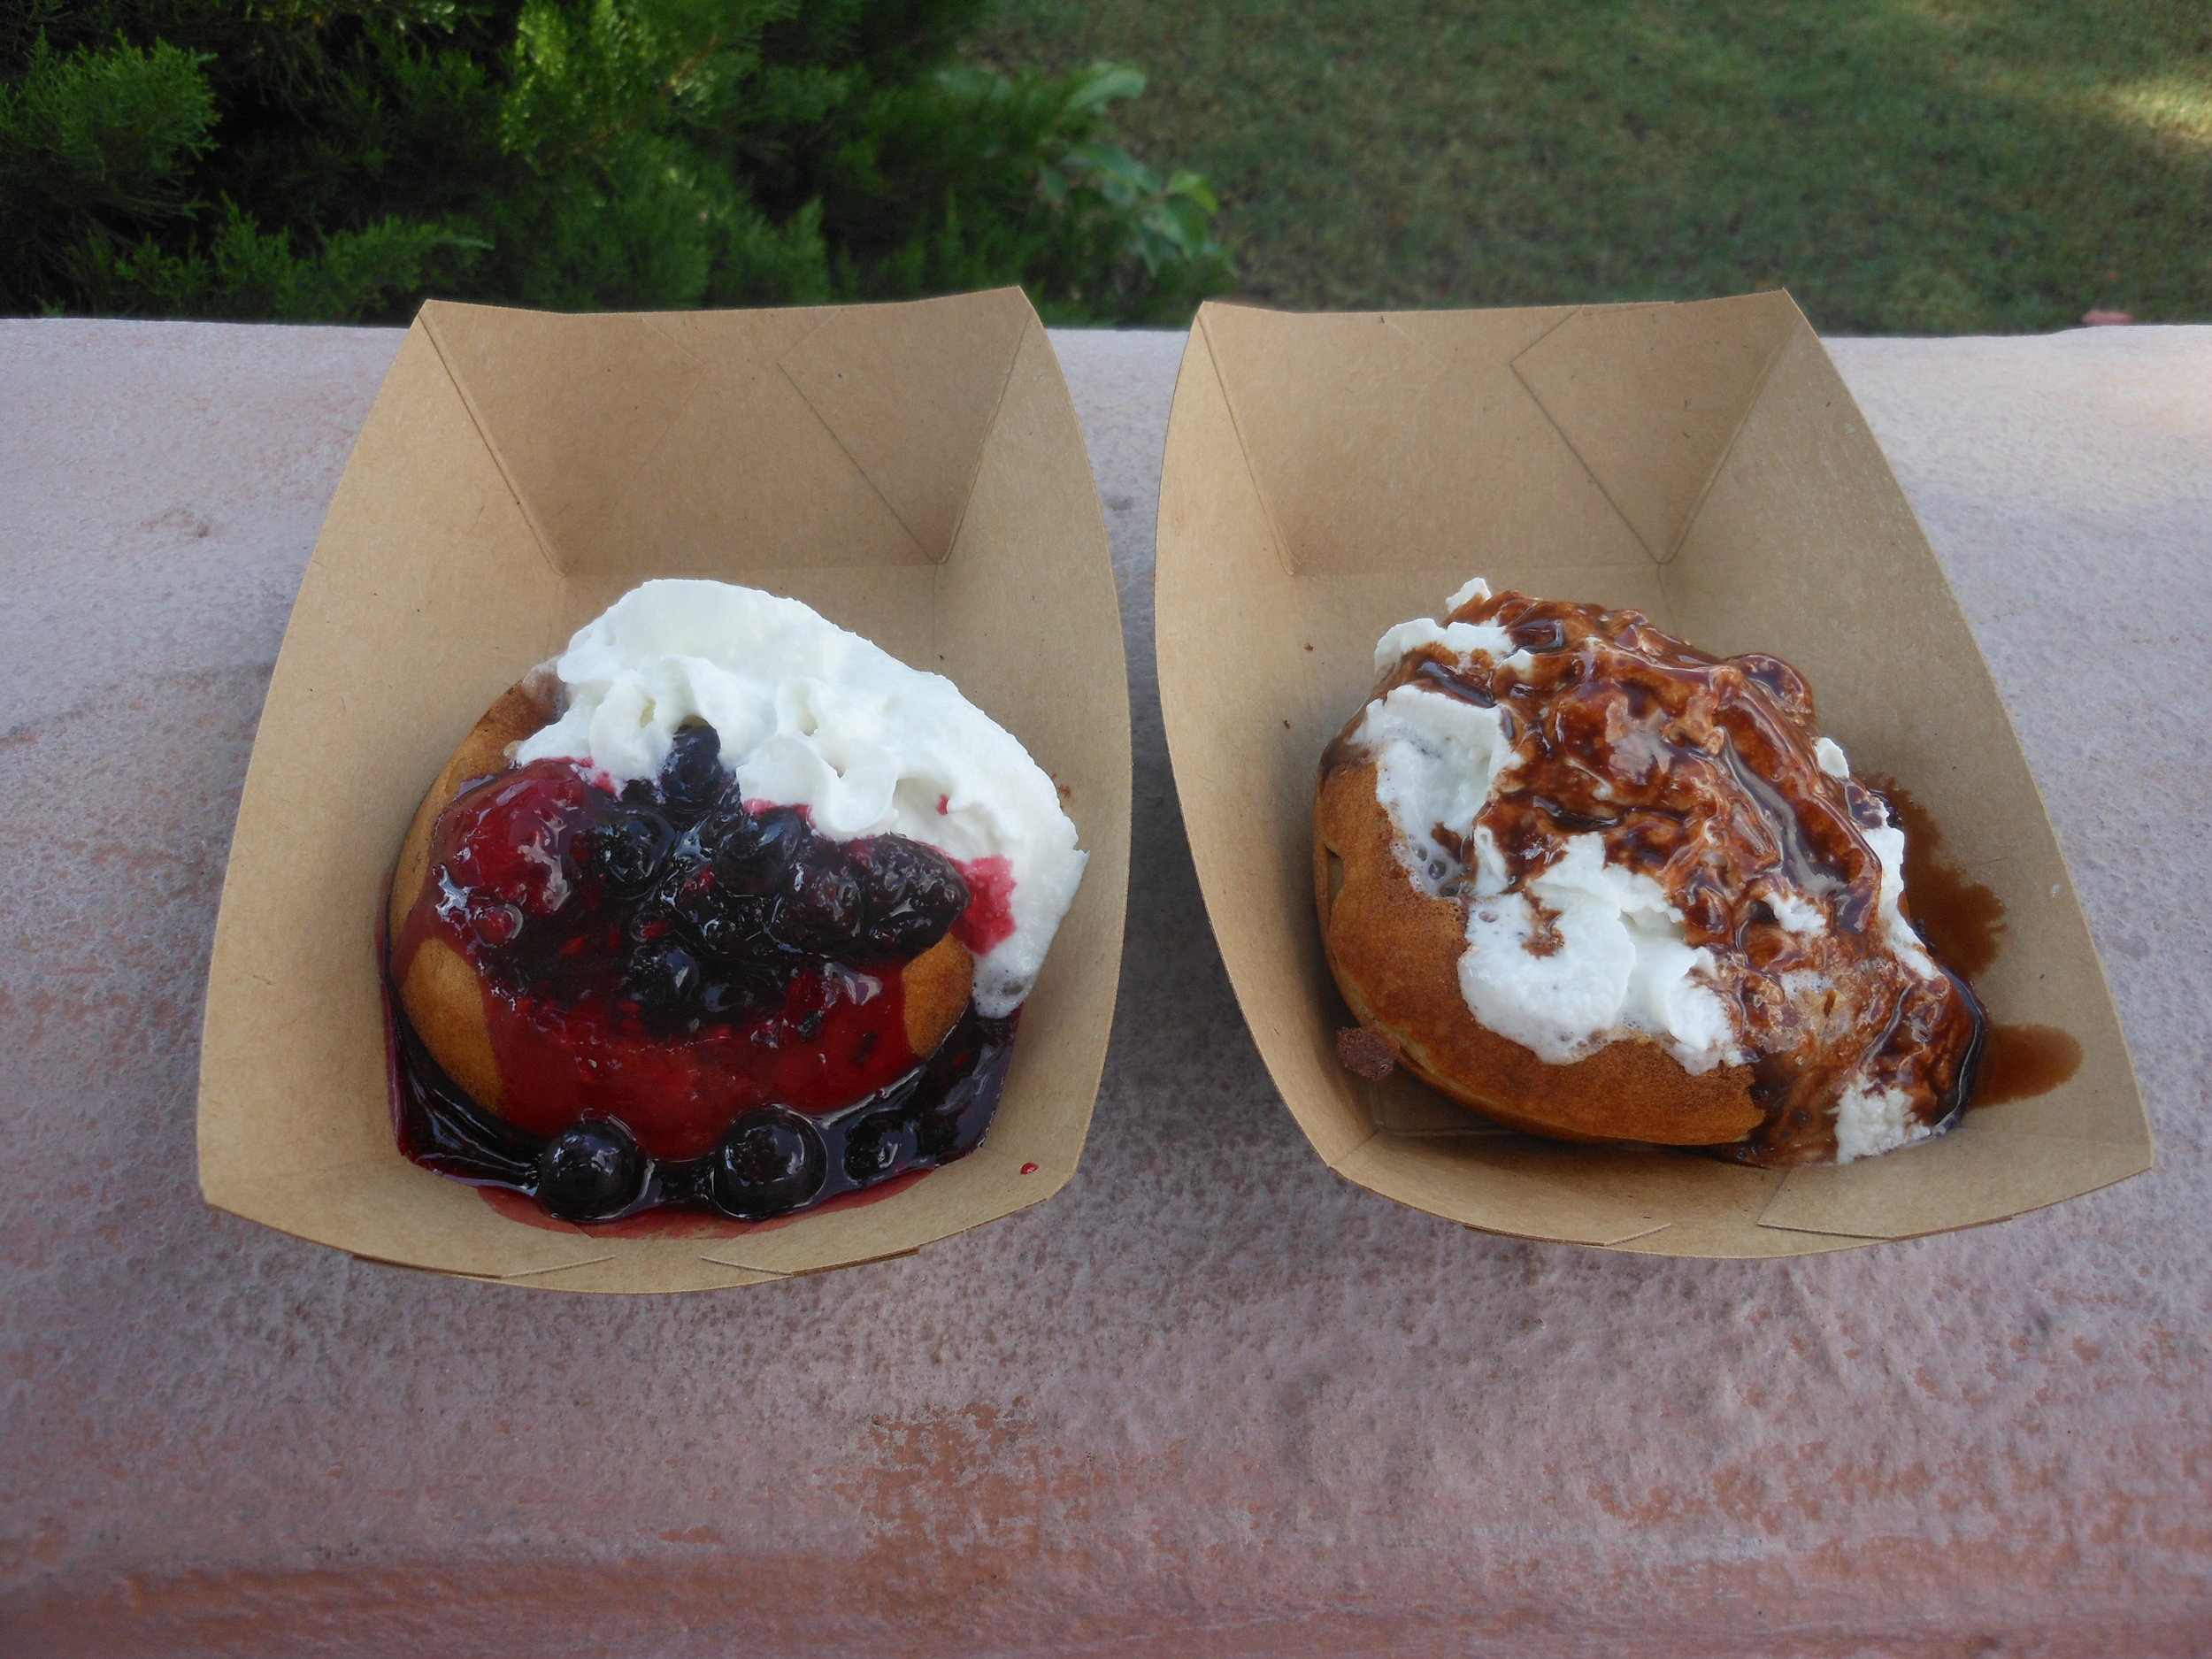 belgian waffle with berries (left) and chocolate (right)